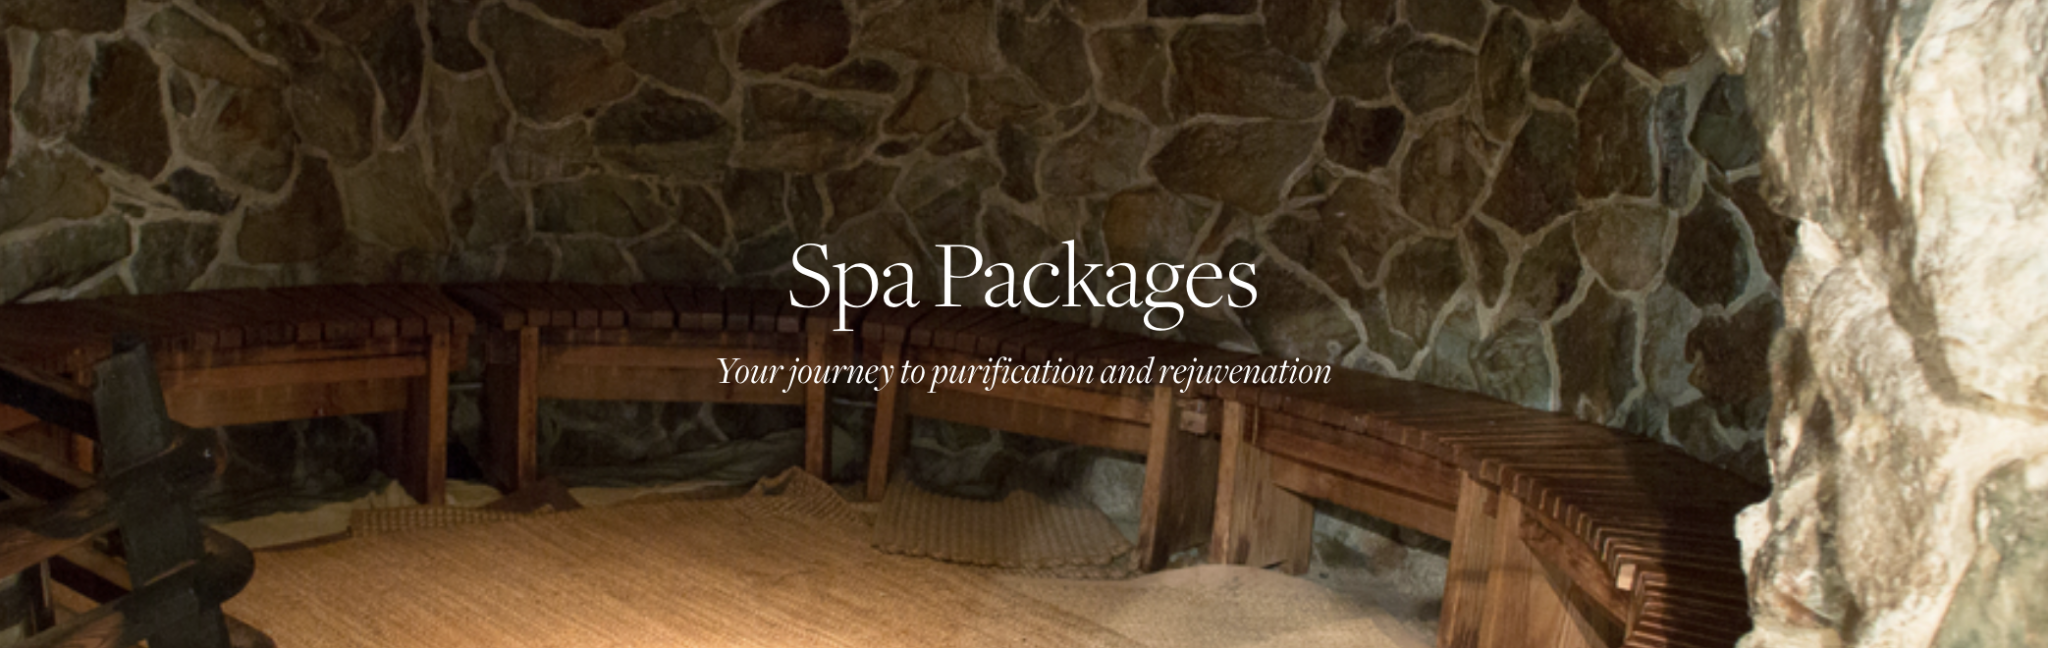 24 hour spa nyc best day spa near me in new york nyc for Couple spa near me